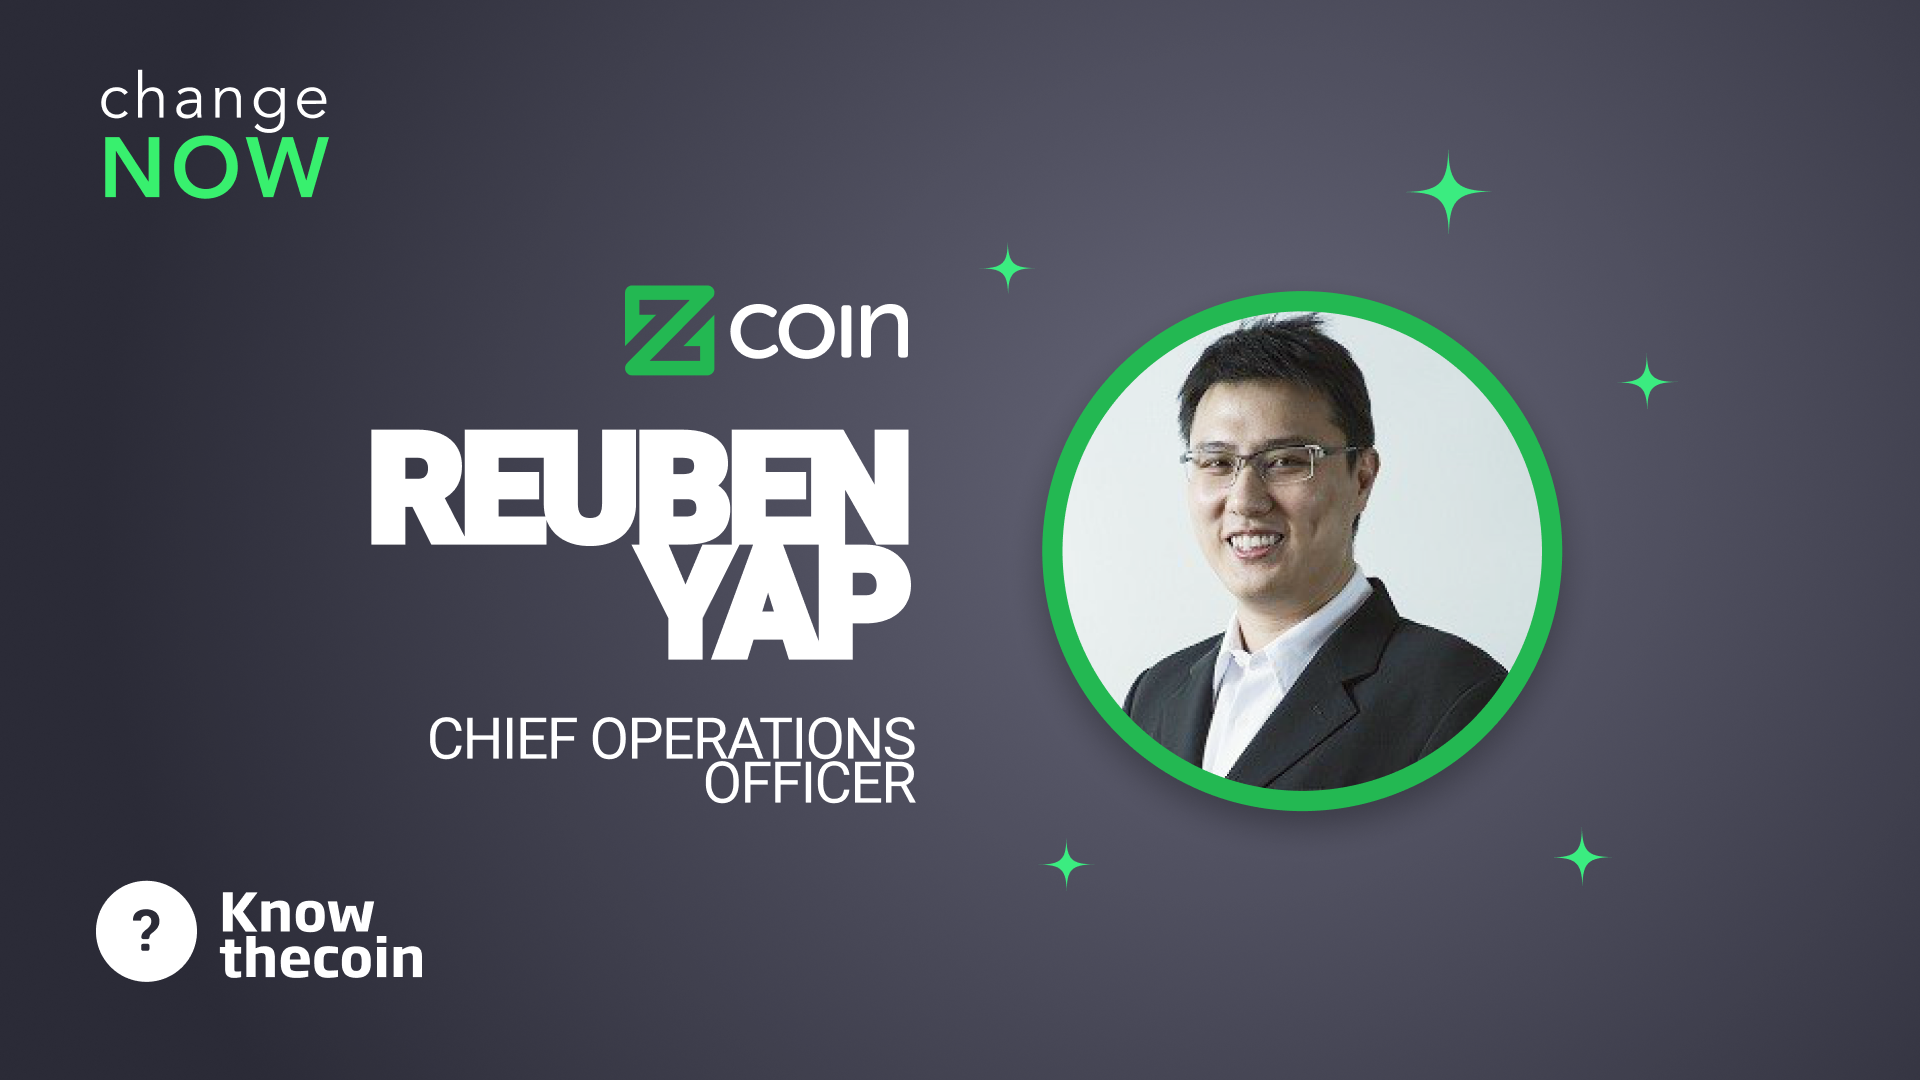 Know The Coin: Zcoin's Reuben Yap